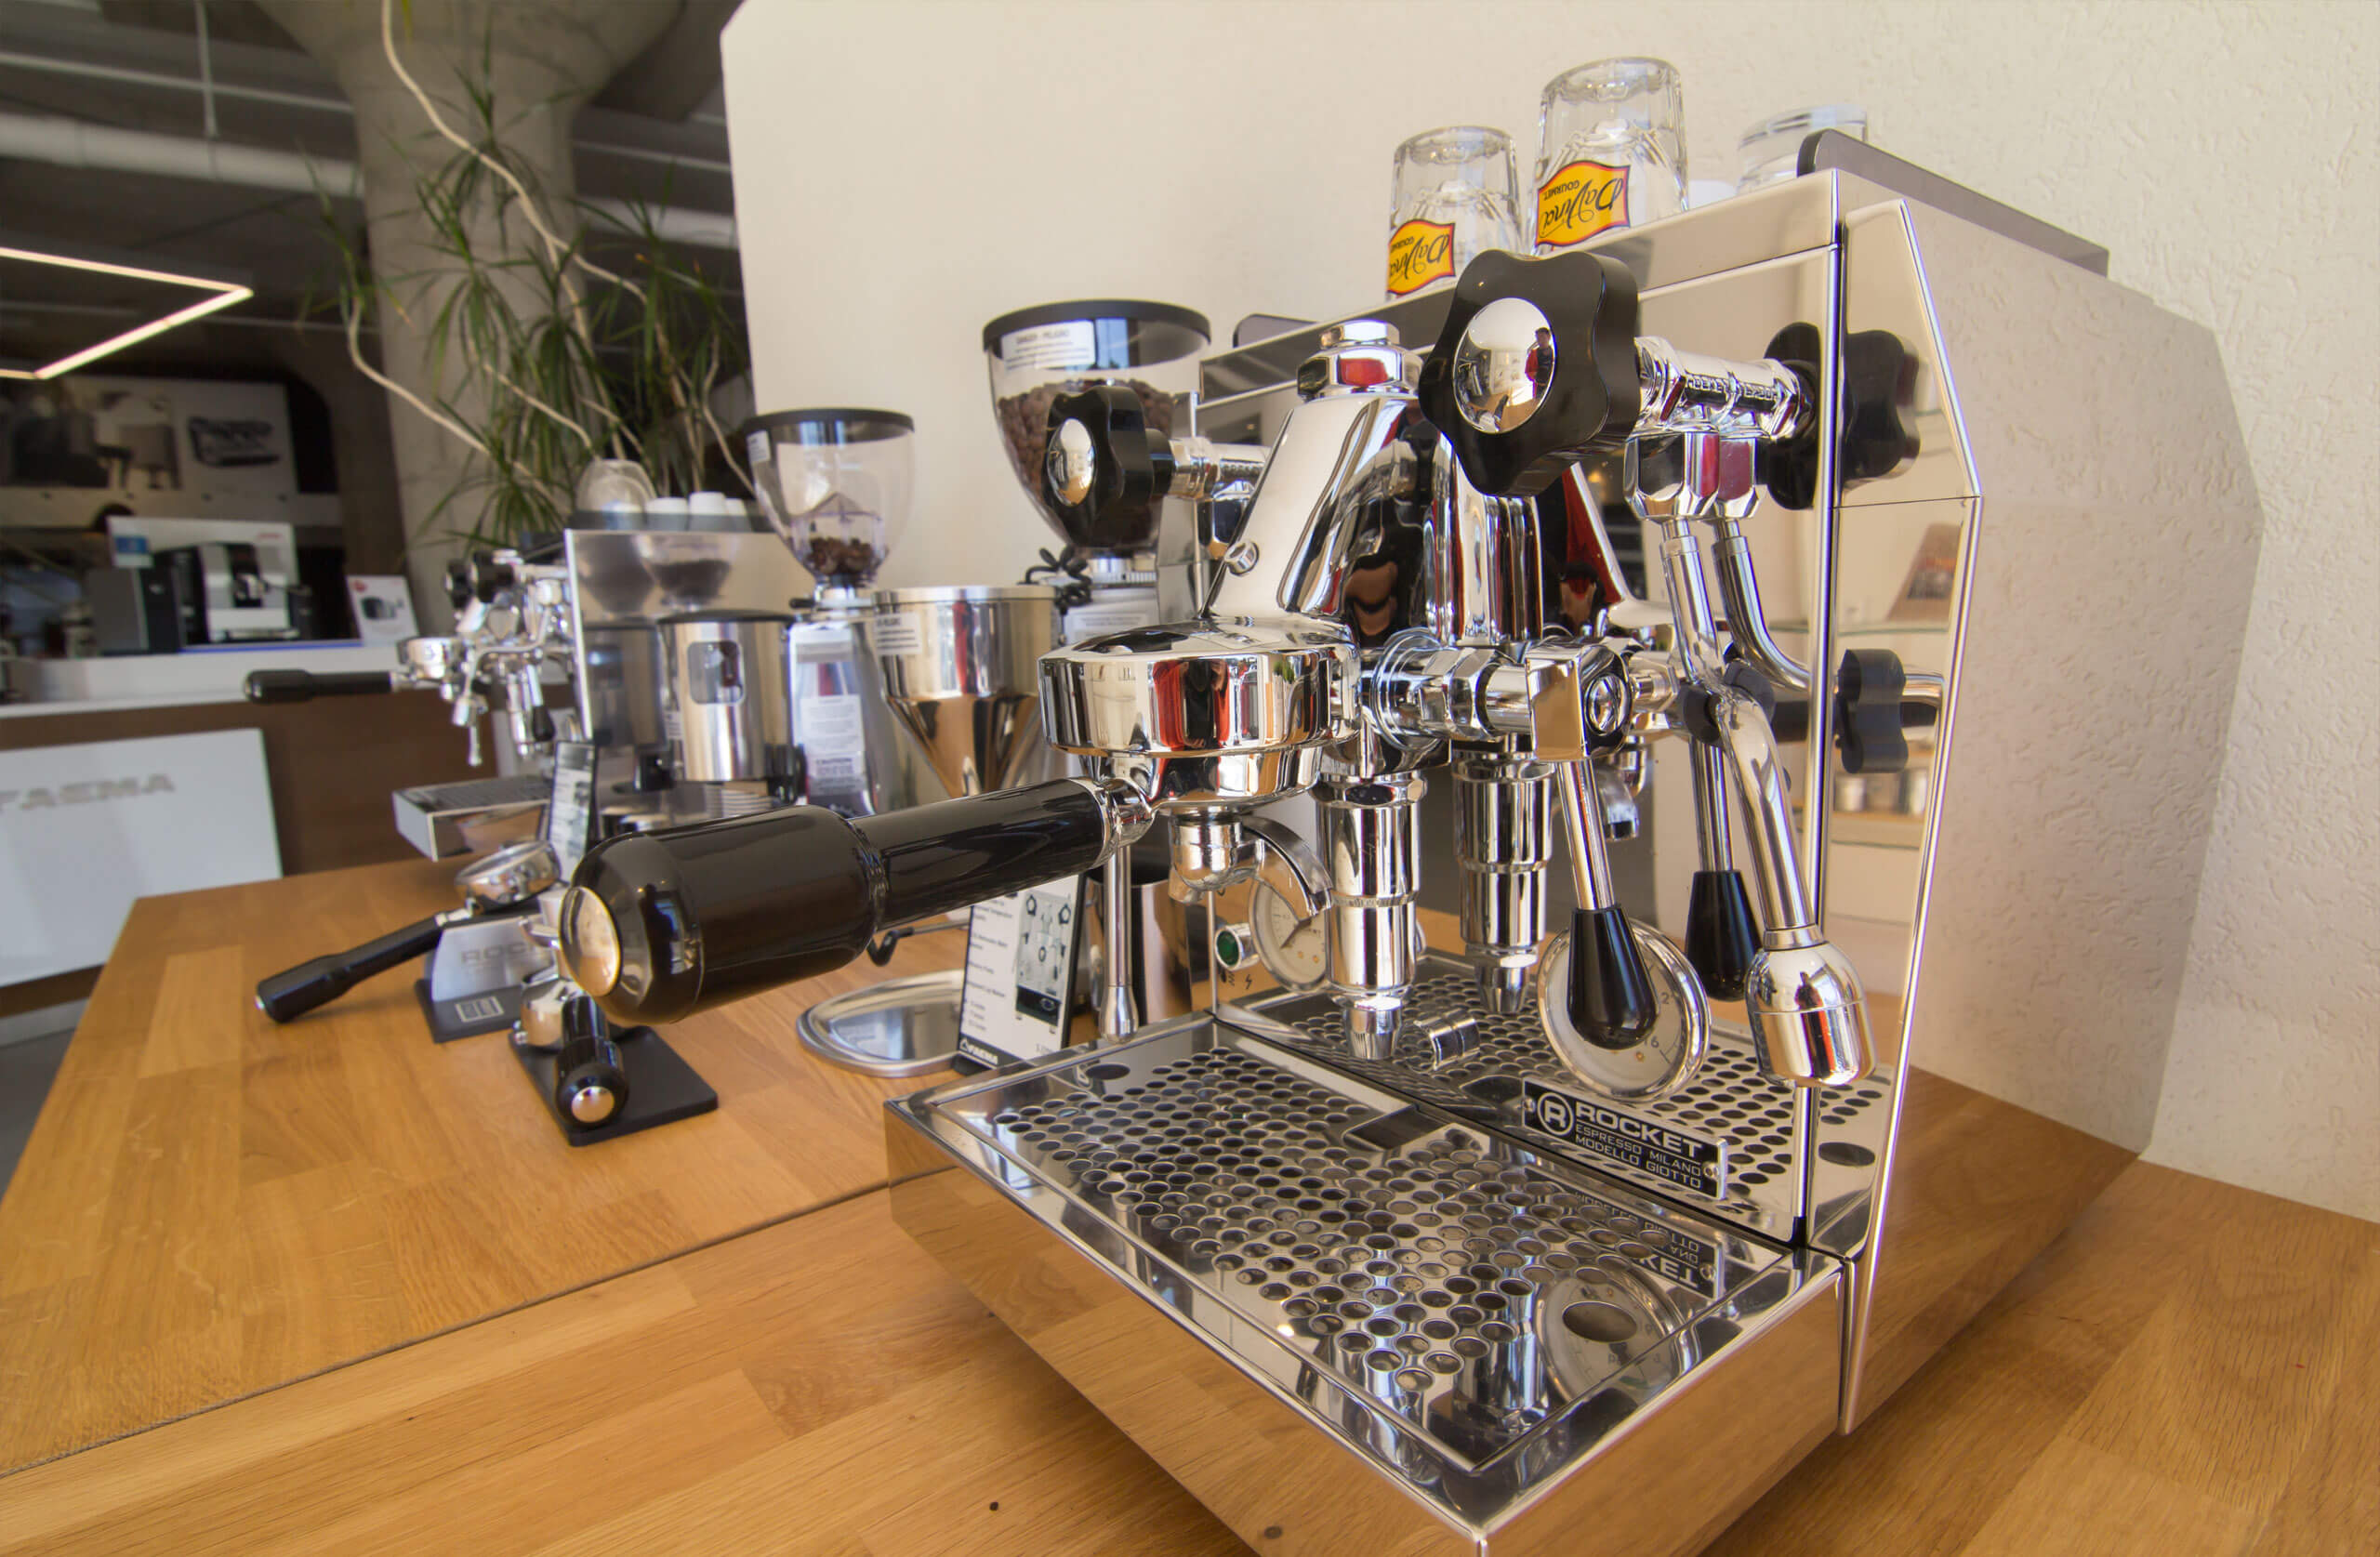 Cappuccino and espresso machines are lined on the counter top.